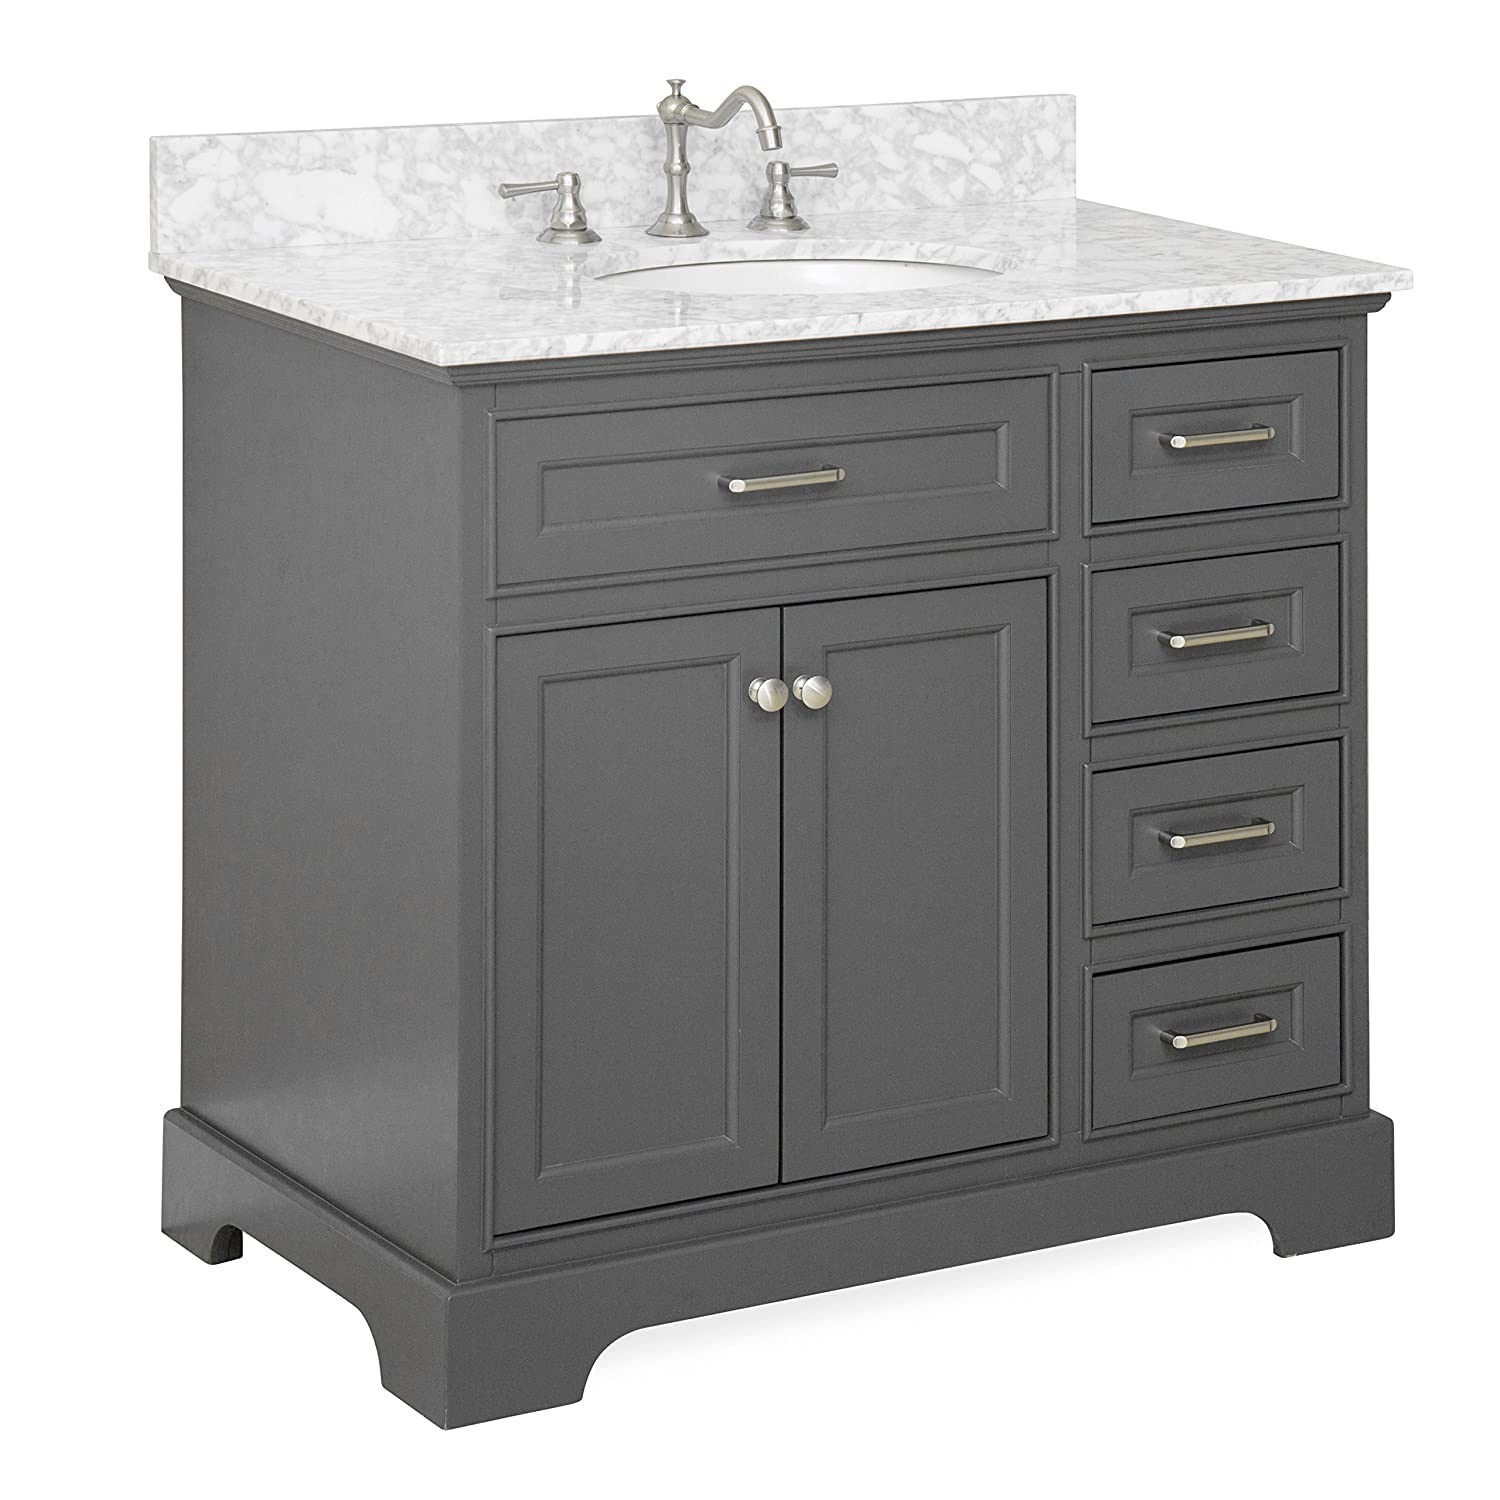 "Aria 36"" Bathroom Vanity Carrara Charcoal Gray Amazon"